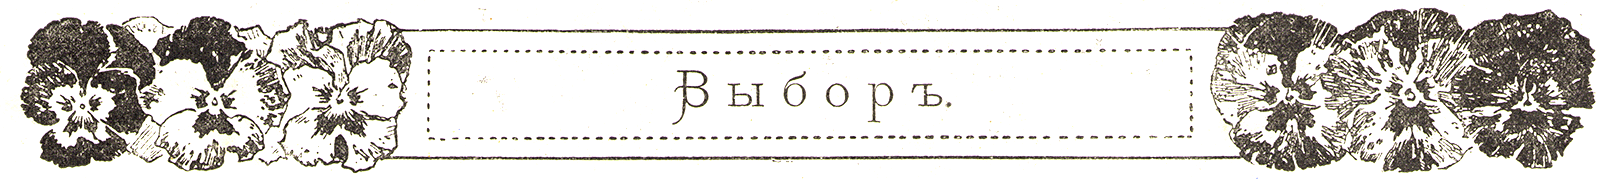 1911-03-elements-vybor-shapka.png